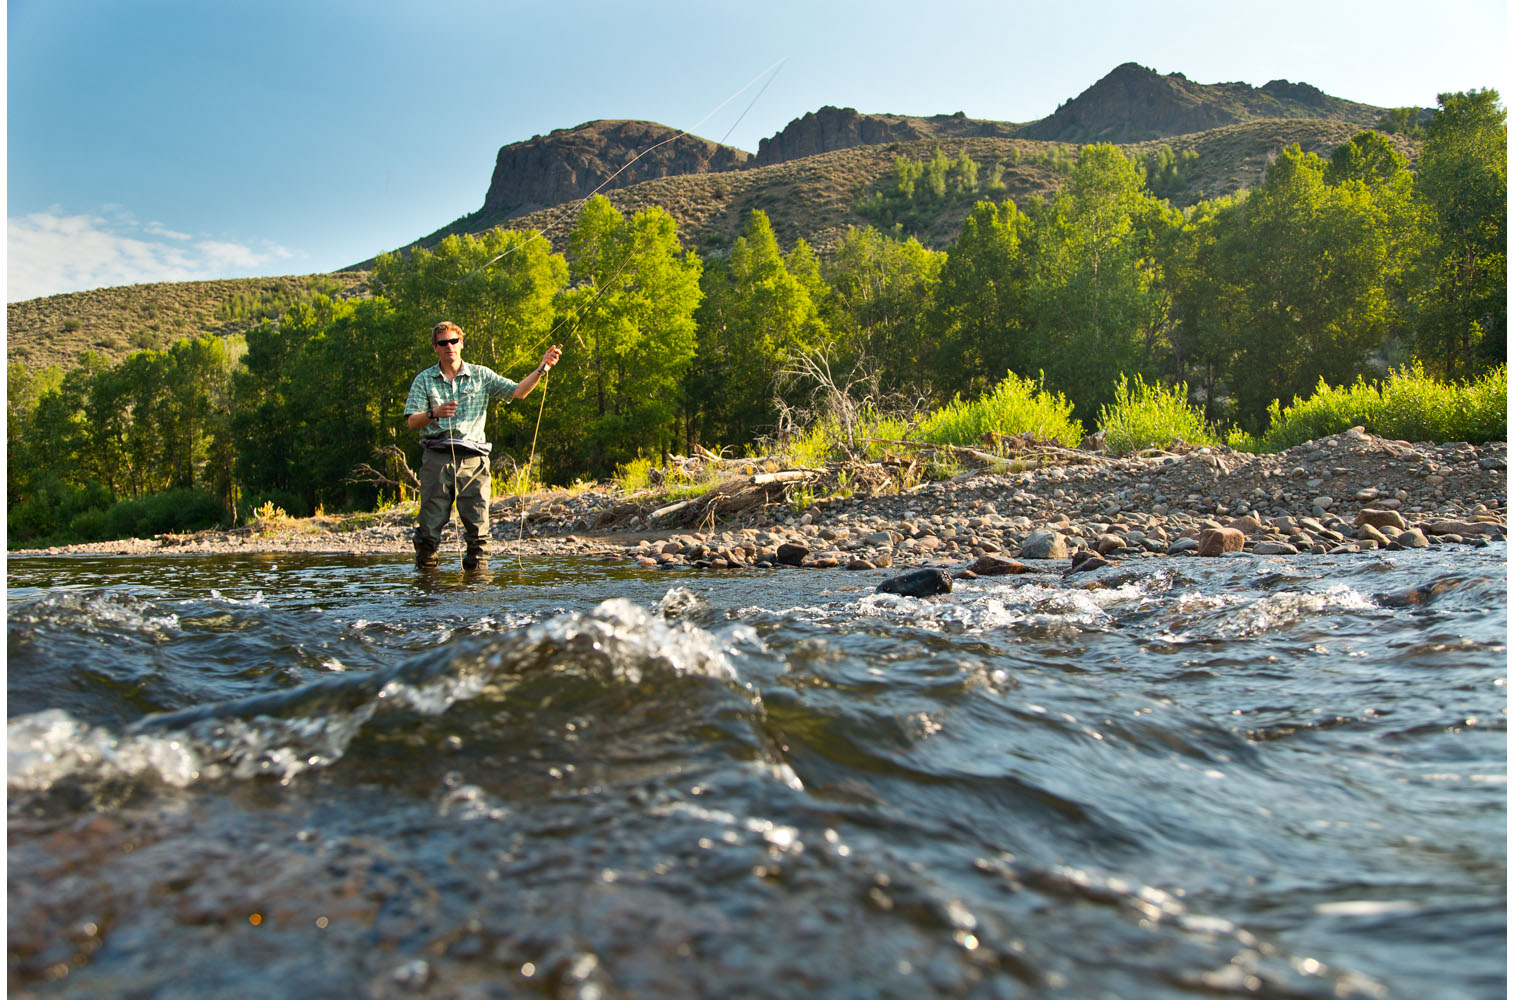 Christopher Solomon fly fishing on the Little Snake River, Colorado